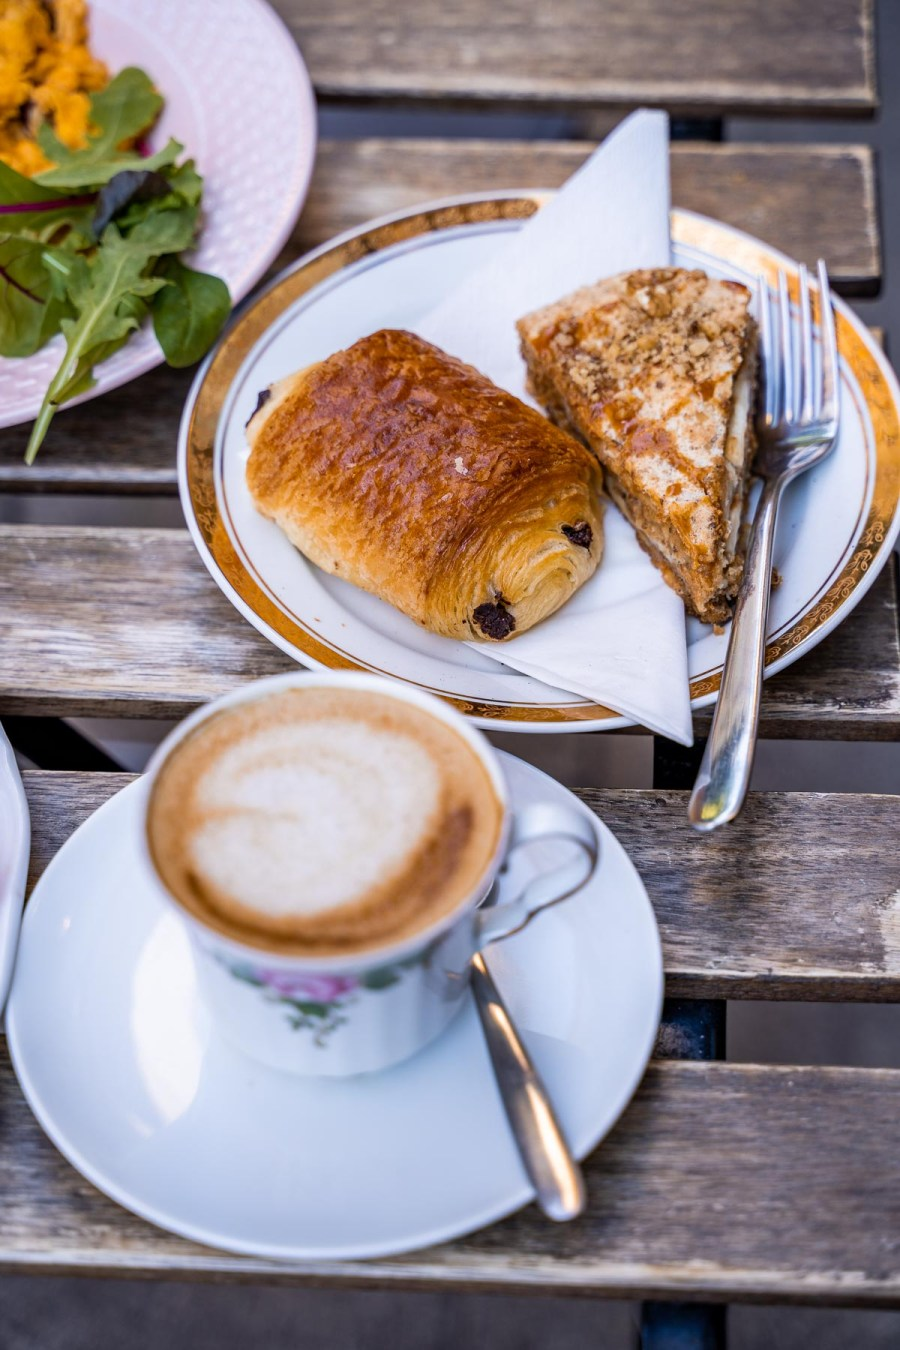 Coffee and pastries for breakfast in Budapest at Zoska